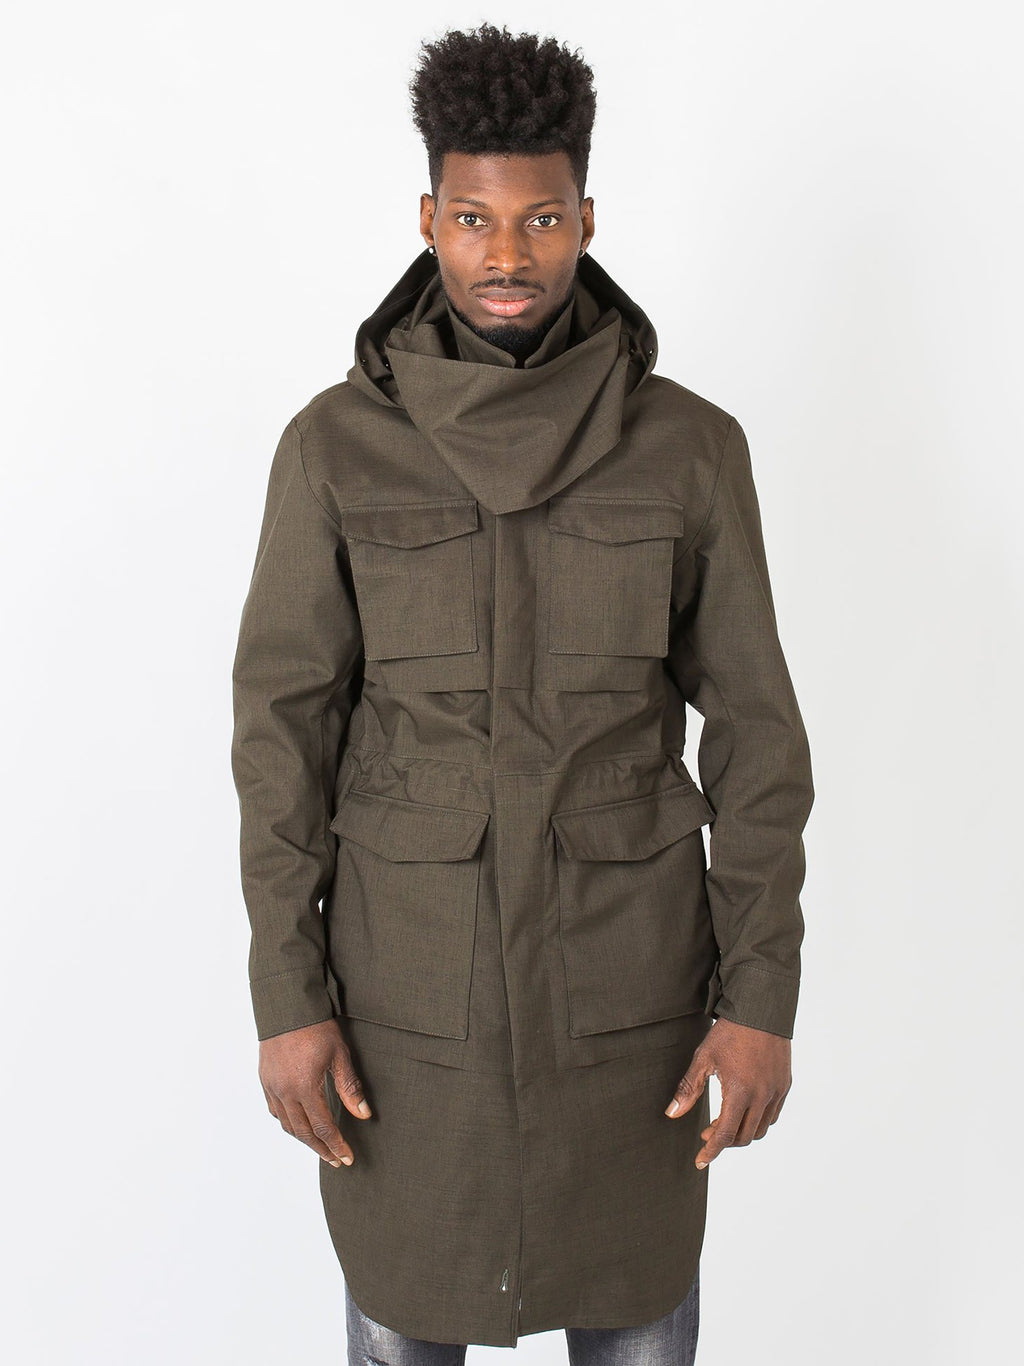 Hybrid Homme - Mixed Army Green